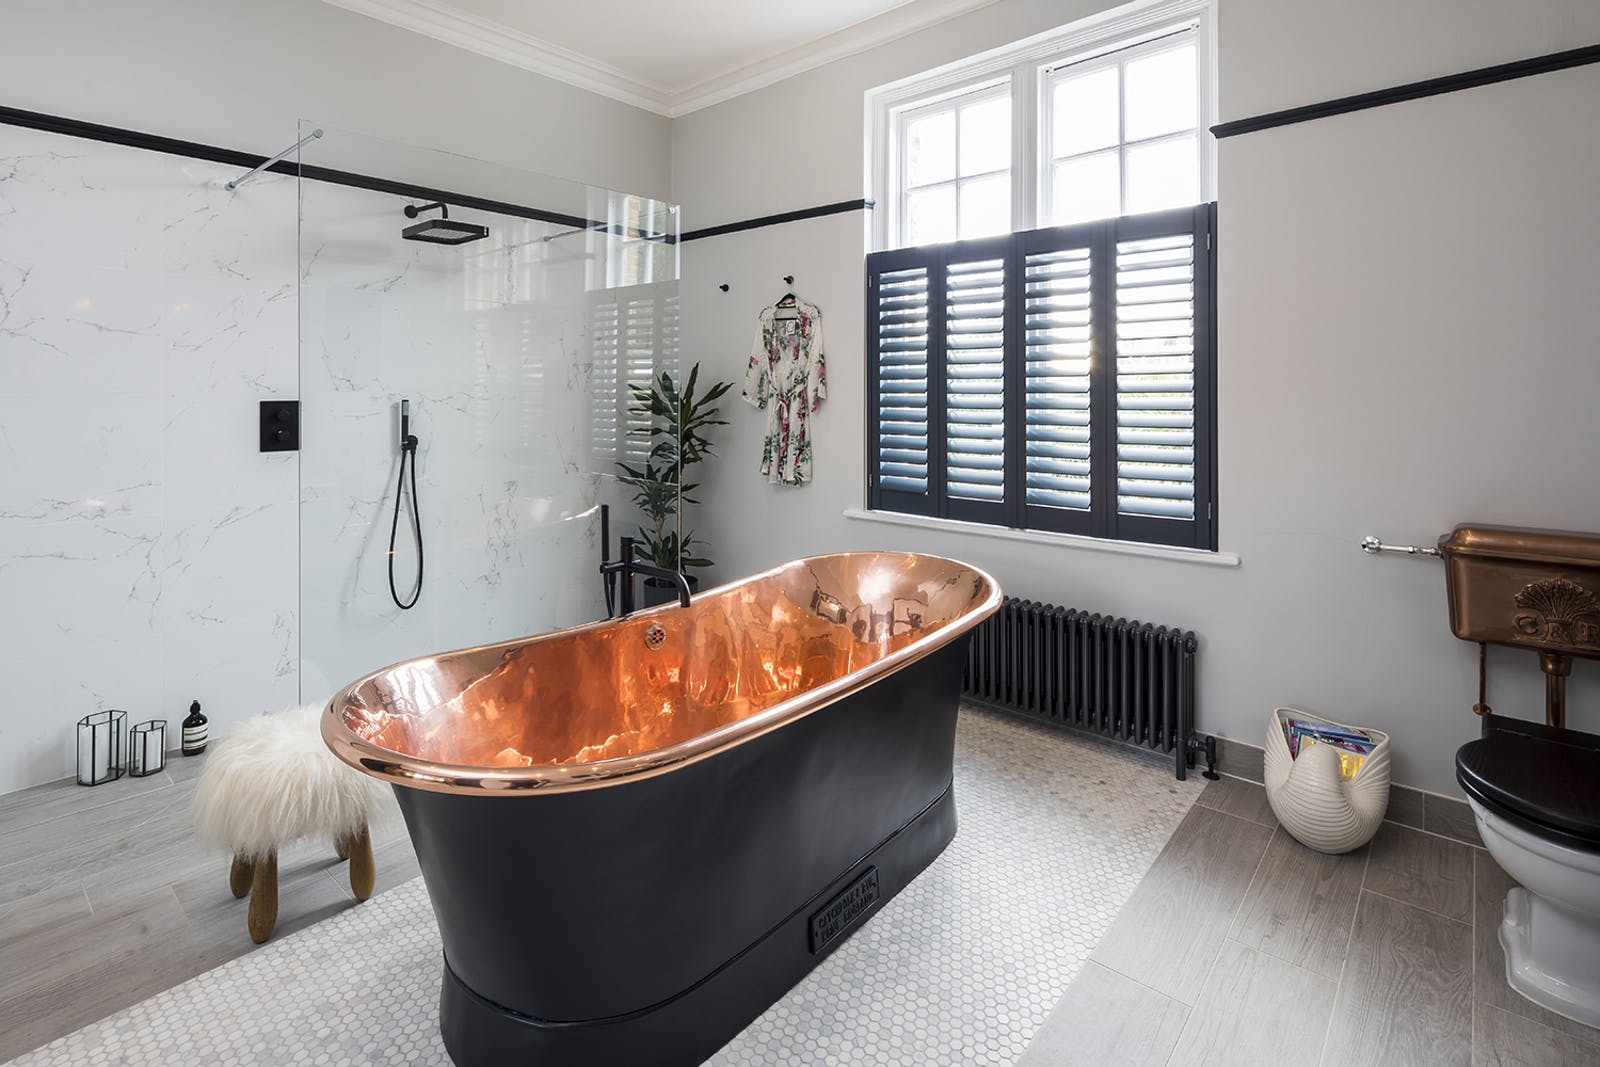 Master bathroom with a black bathtub